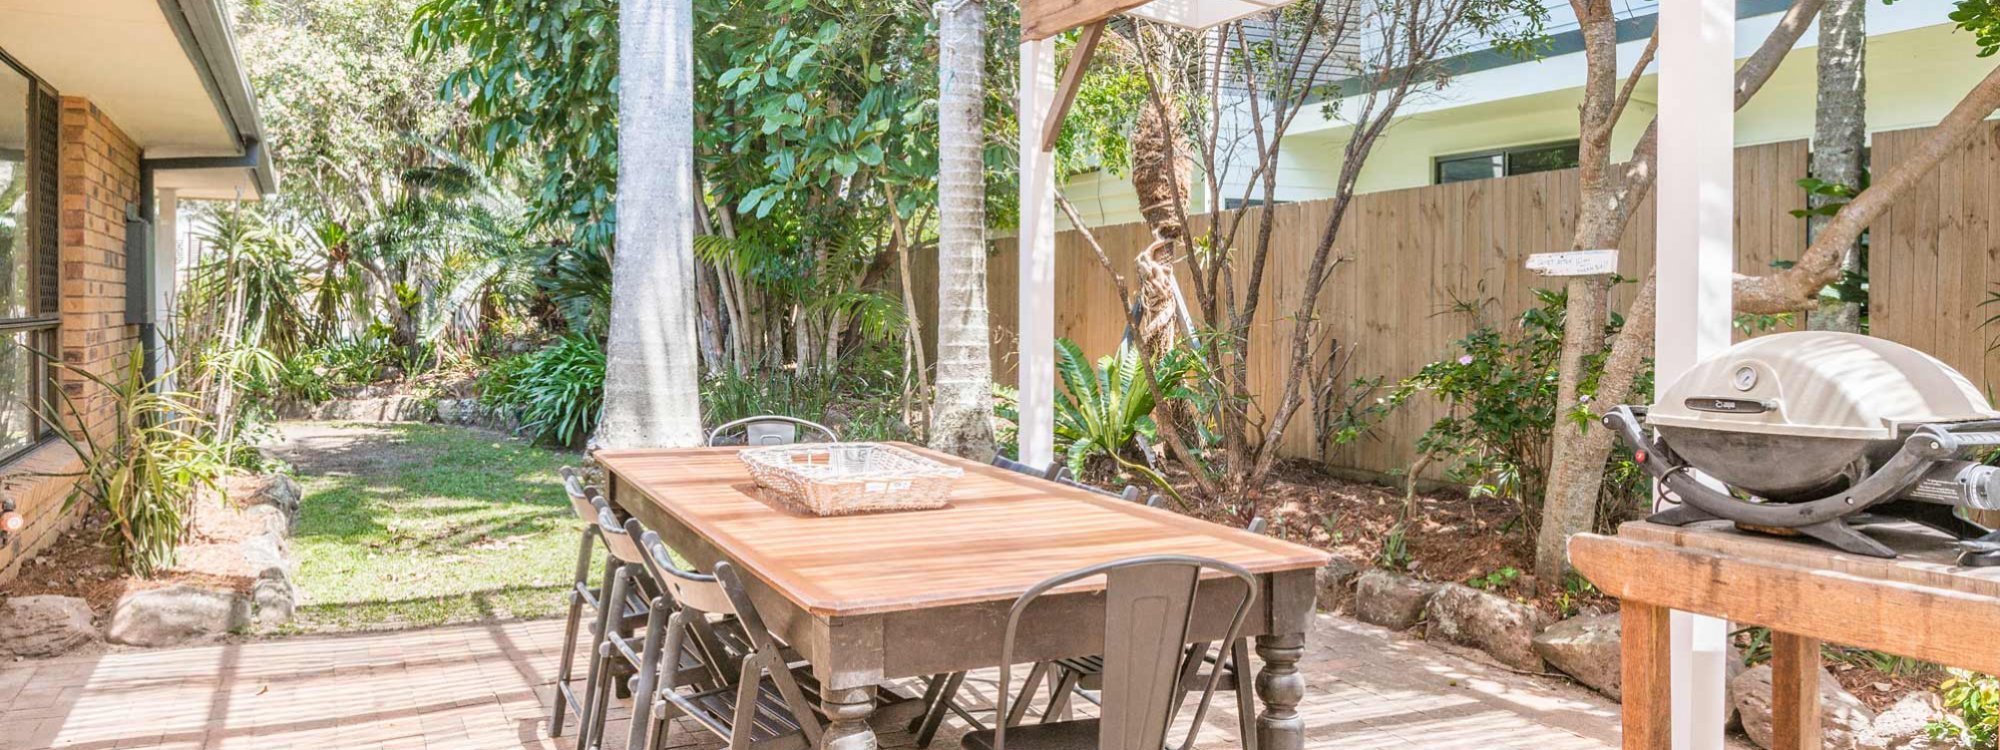 Sea Salt - Byron Bay - Outdoor Entertaining Area a